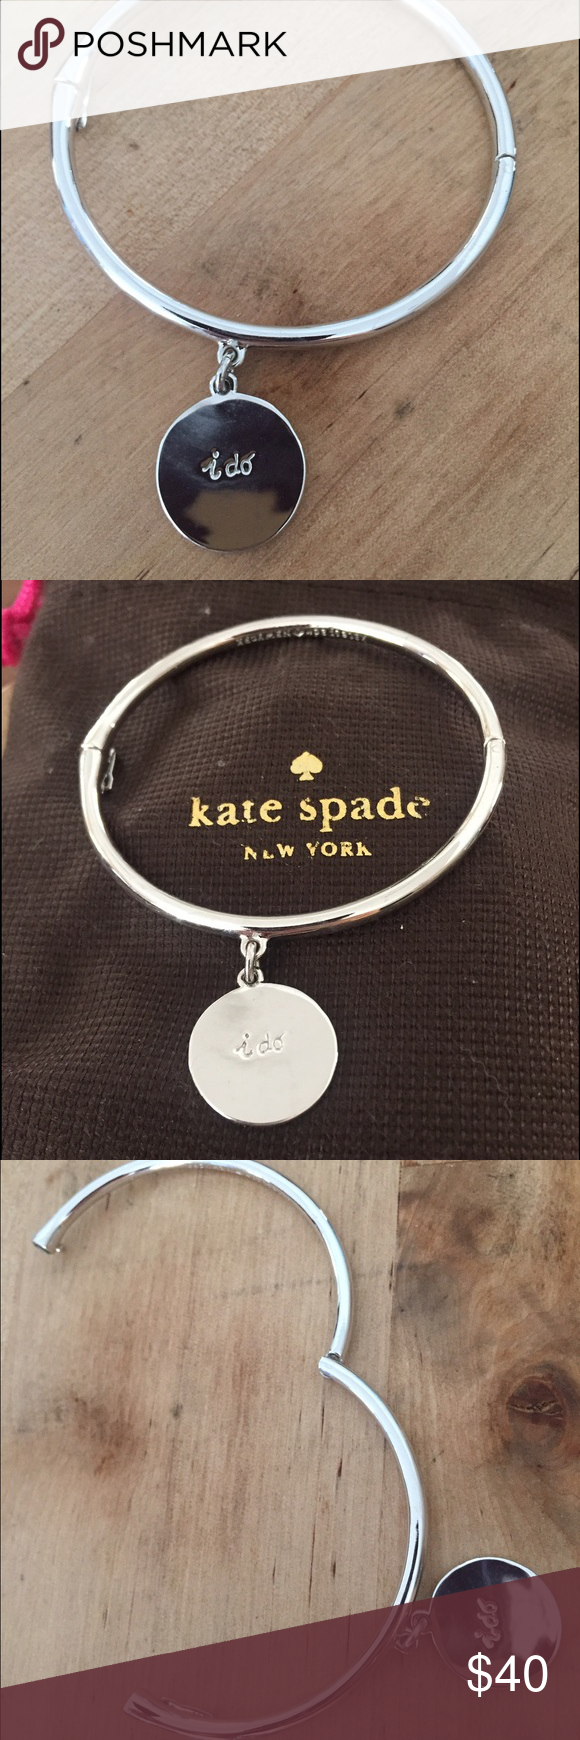 """Kate spade """"I do"""" charm bracelet Worn once or twice. Very cute gift for a newly engaged or married friend/family member! Comes with little dust bag which is only worn from storage. kate spade Jewelry Bracelets"""